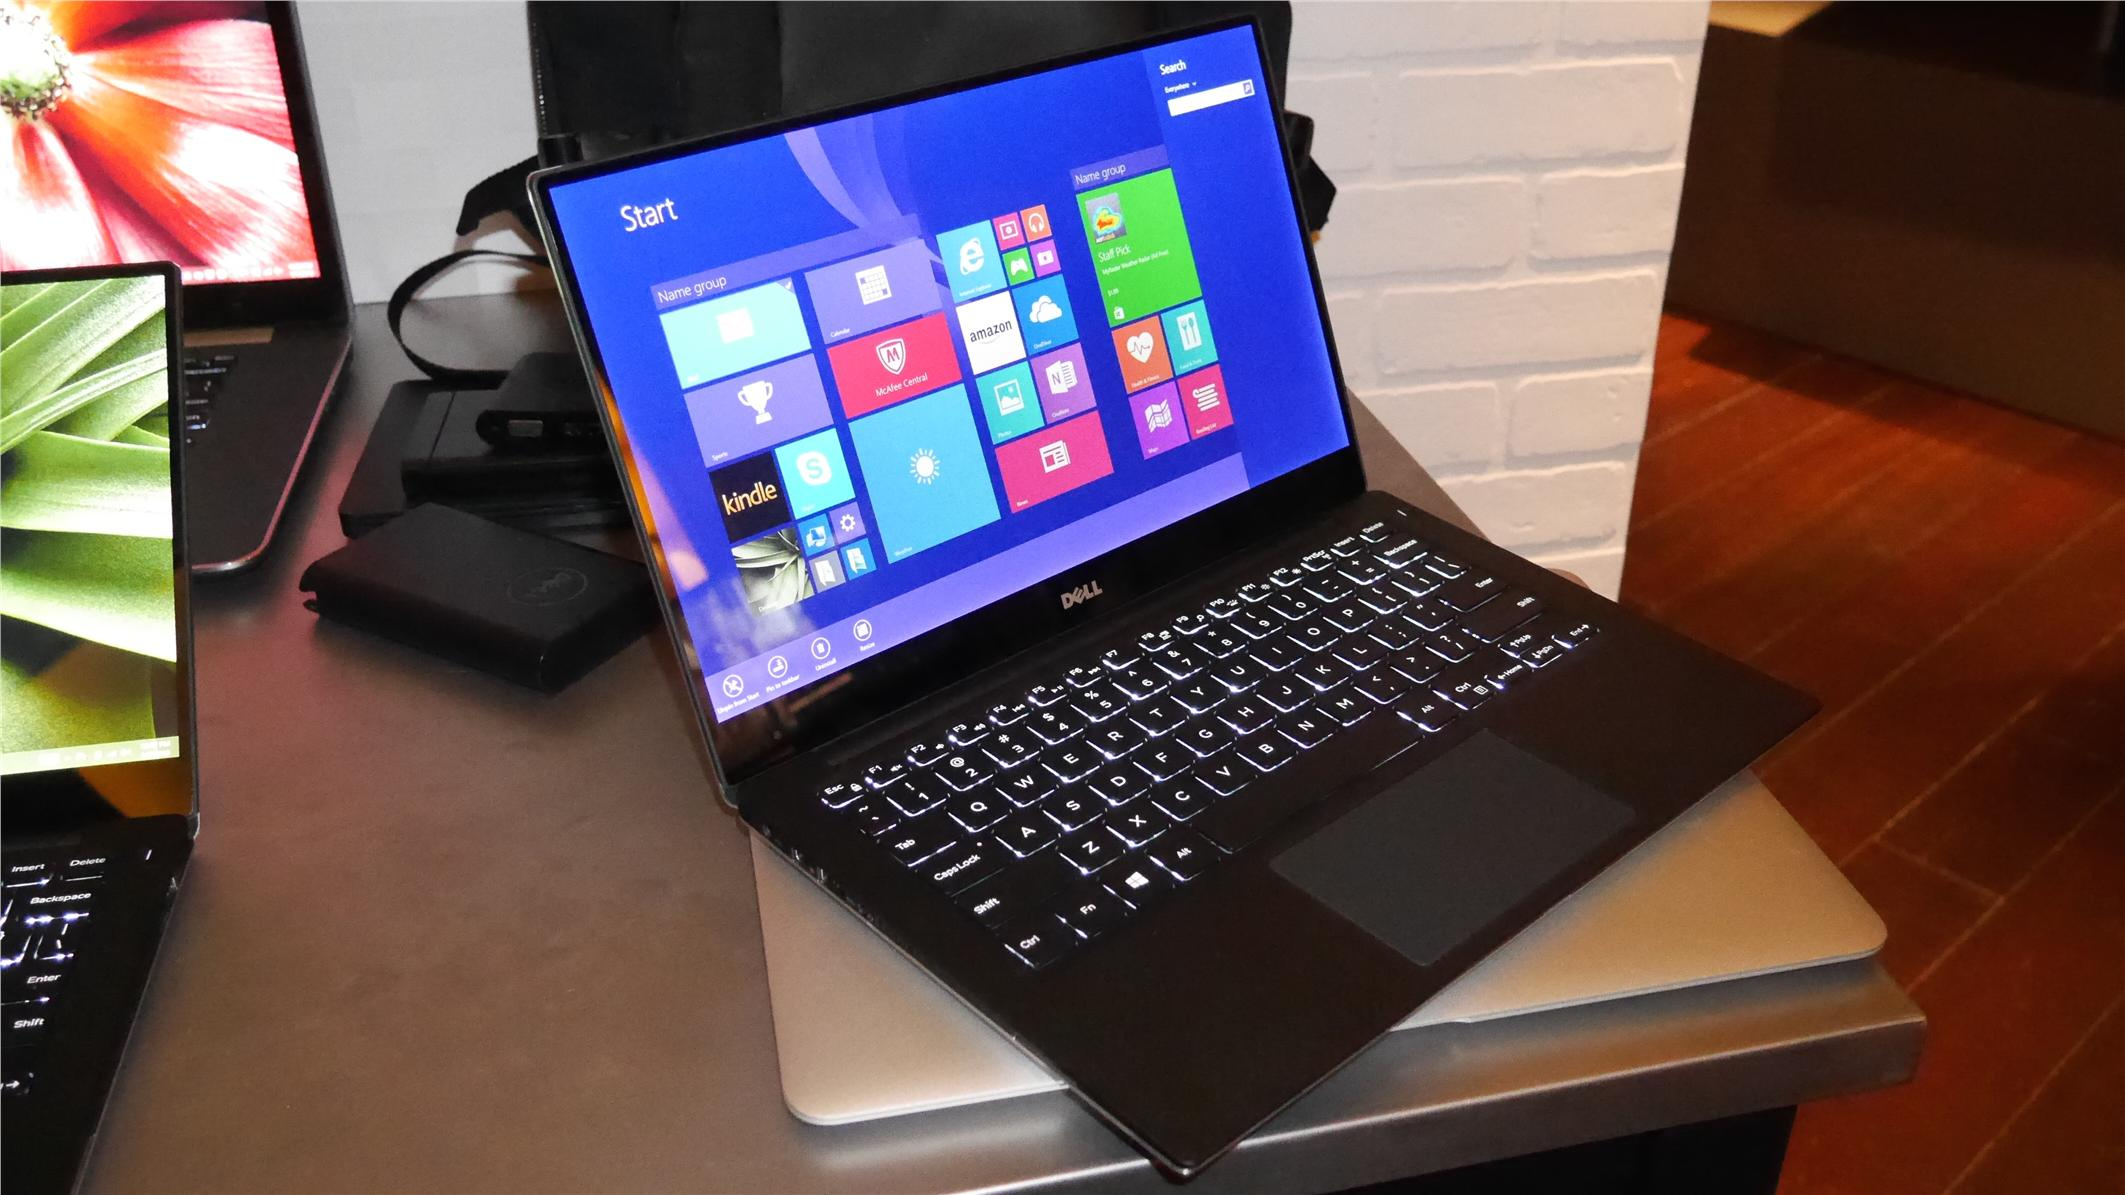 Dell XPS 13 QHD 13.3 Inch Touchscreen Laptop Review